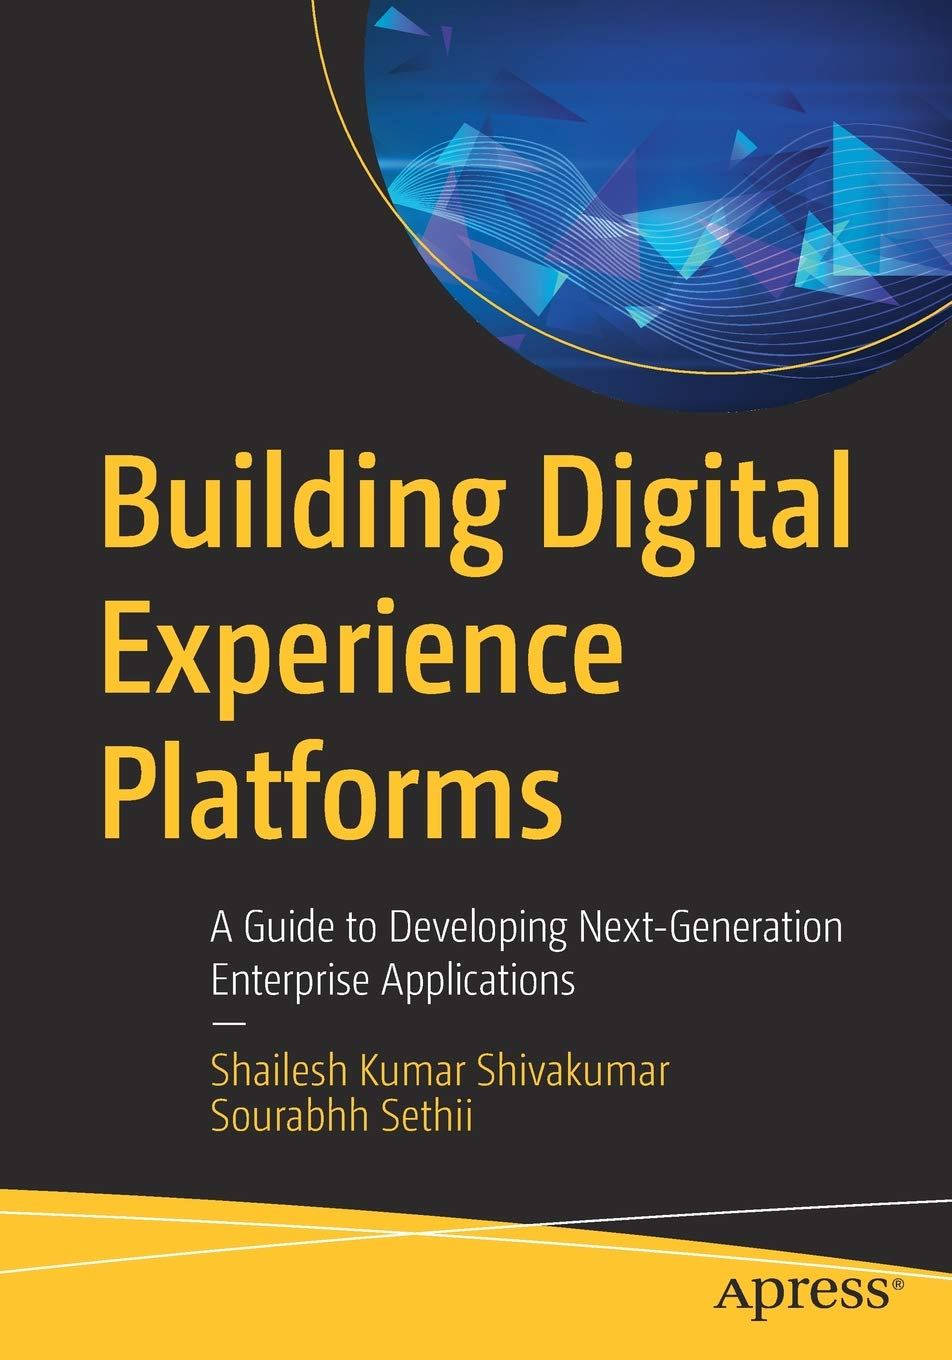 Building Digital Experience Platforms: A Guide to Developing Next